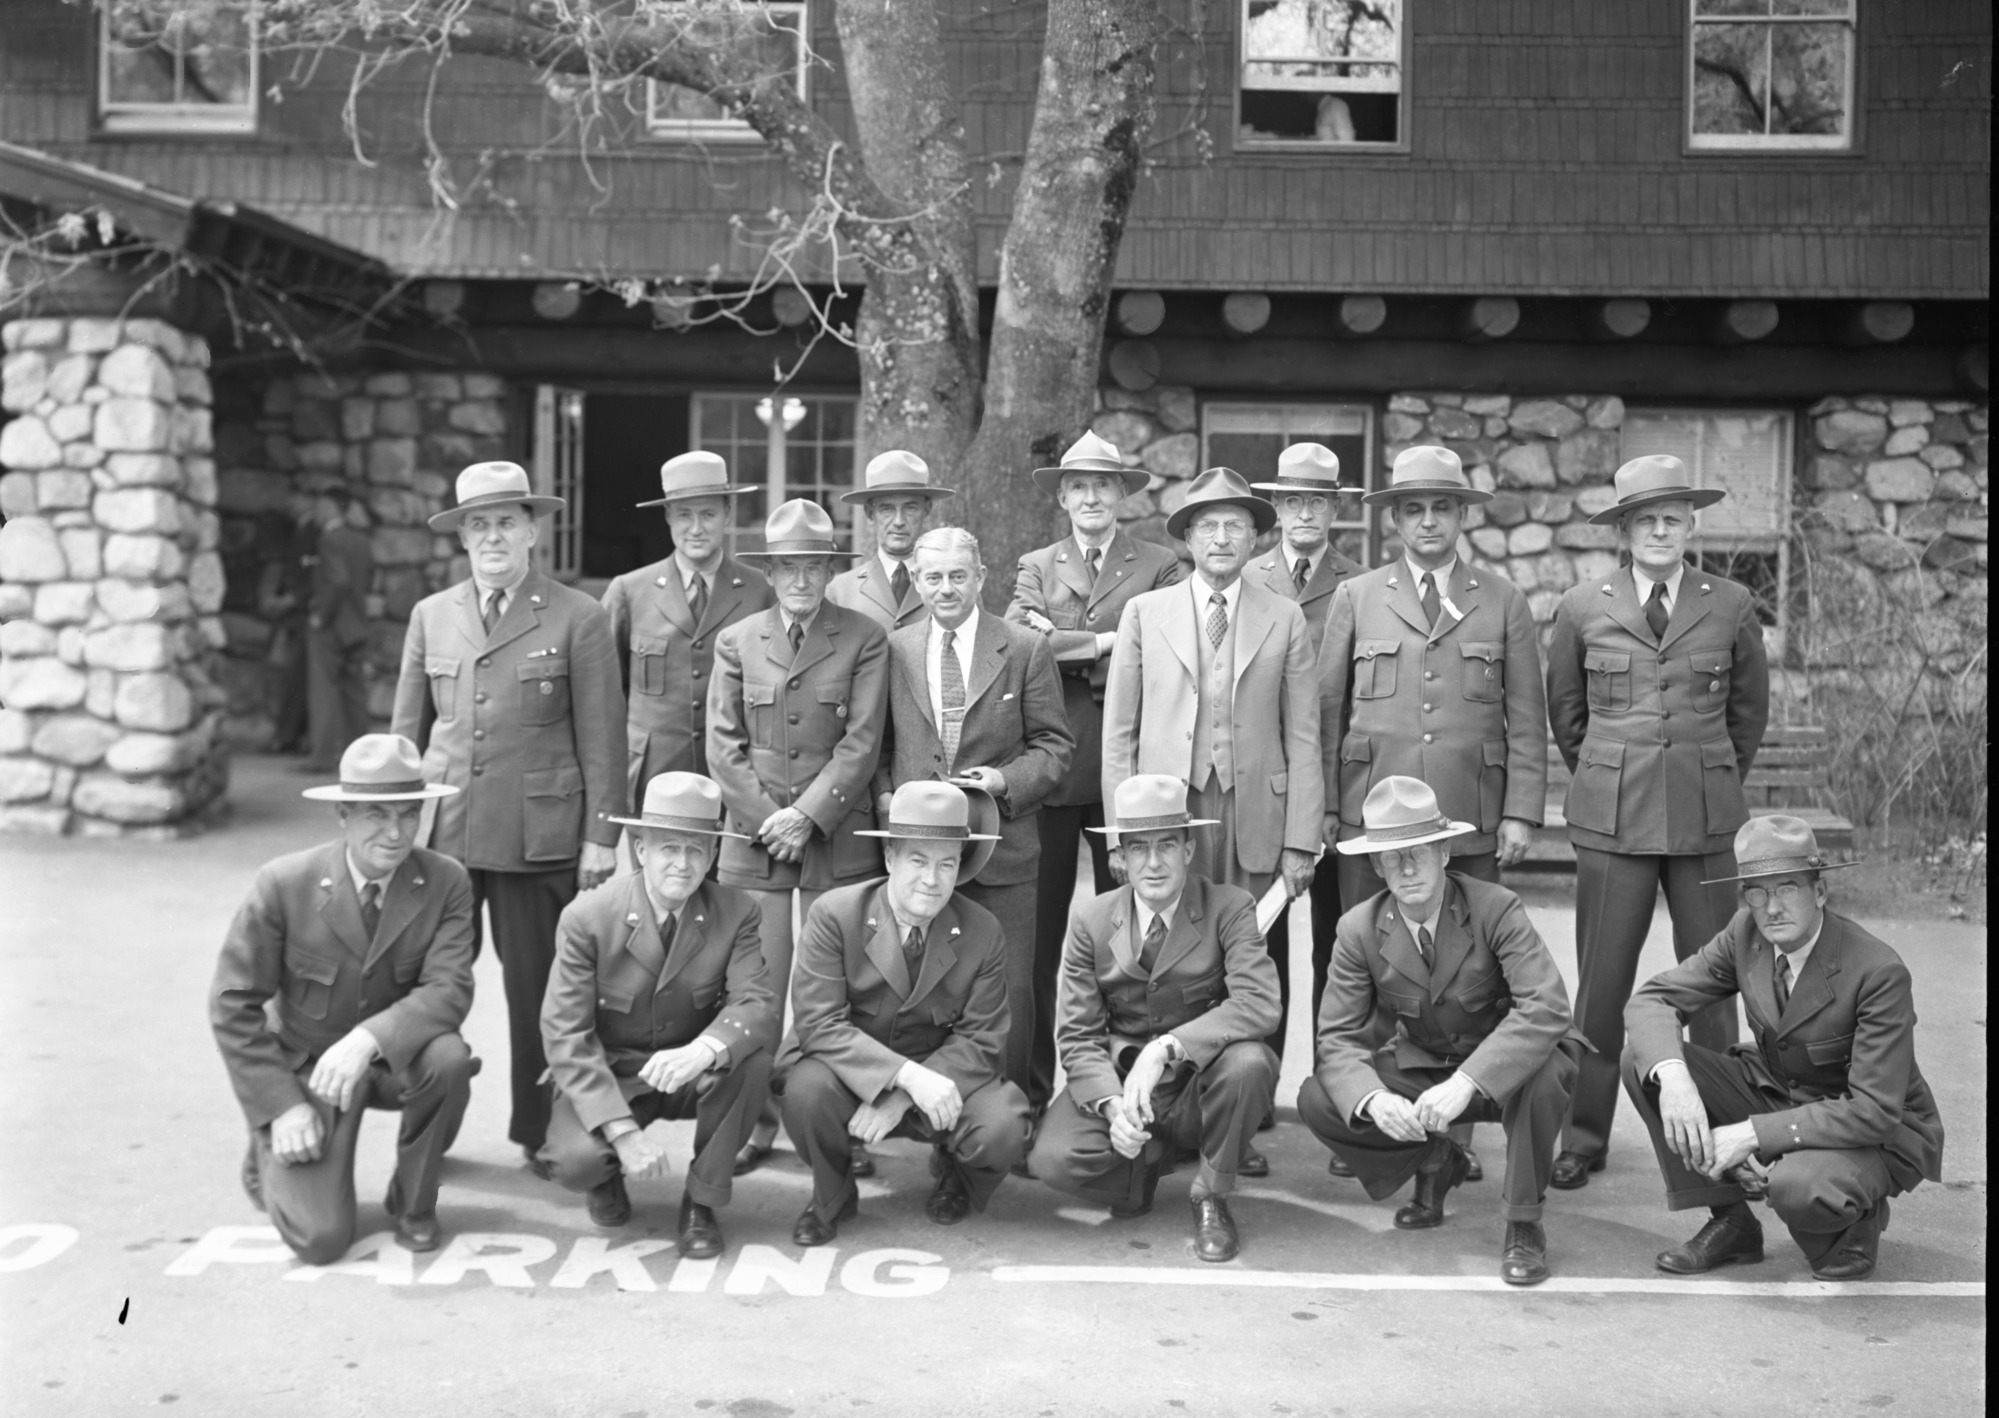 Superintendents and Rangers Fire Conference. WITH HATS ON-LEFT TO RIGHT Back Row: Finn, Muir Woods; Buckley, Silver Creek R.D.A; Goodwin; Fisher, Lava Beds; Drury; White; Tomlinson; Leavitt; Macy; Preston. Front Row: Pearson; Frank Kittredge; Jimmy Lloyd; Cole; Gibbs, Mendocino Woodlands; McCarthy, Craters of the Moon